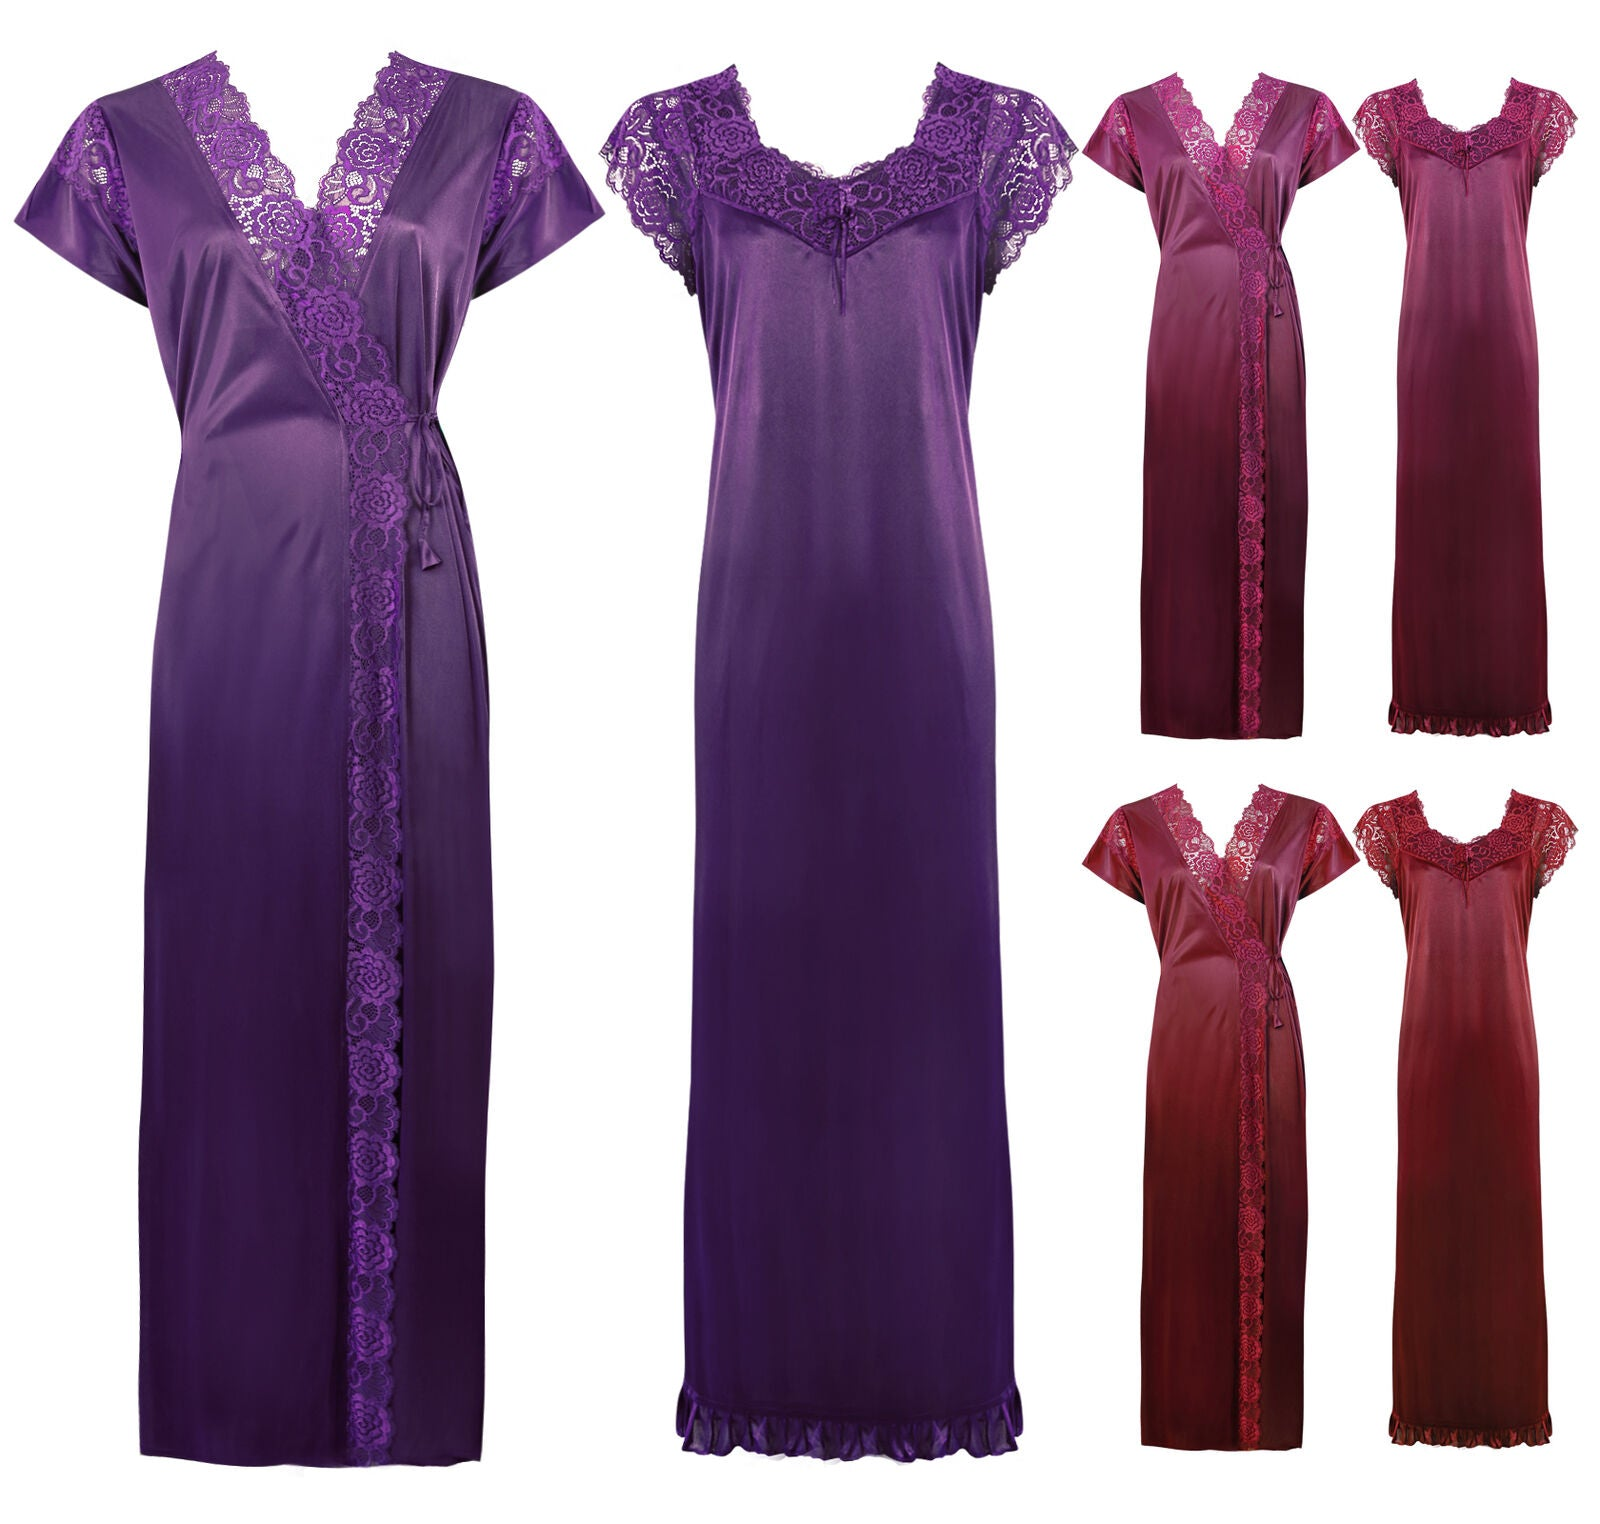 Color: Dark Wine, Deep Red, Navy, Purple, Red, Royal Blue, Ruby, Wine 2 Pc Satin Lace Nighty and Robe Size: One Size: Regular (8-14)